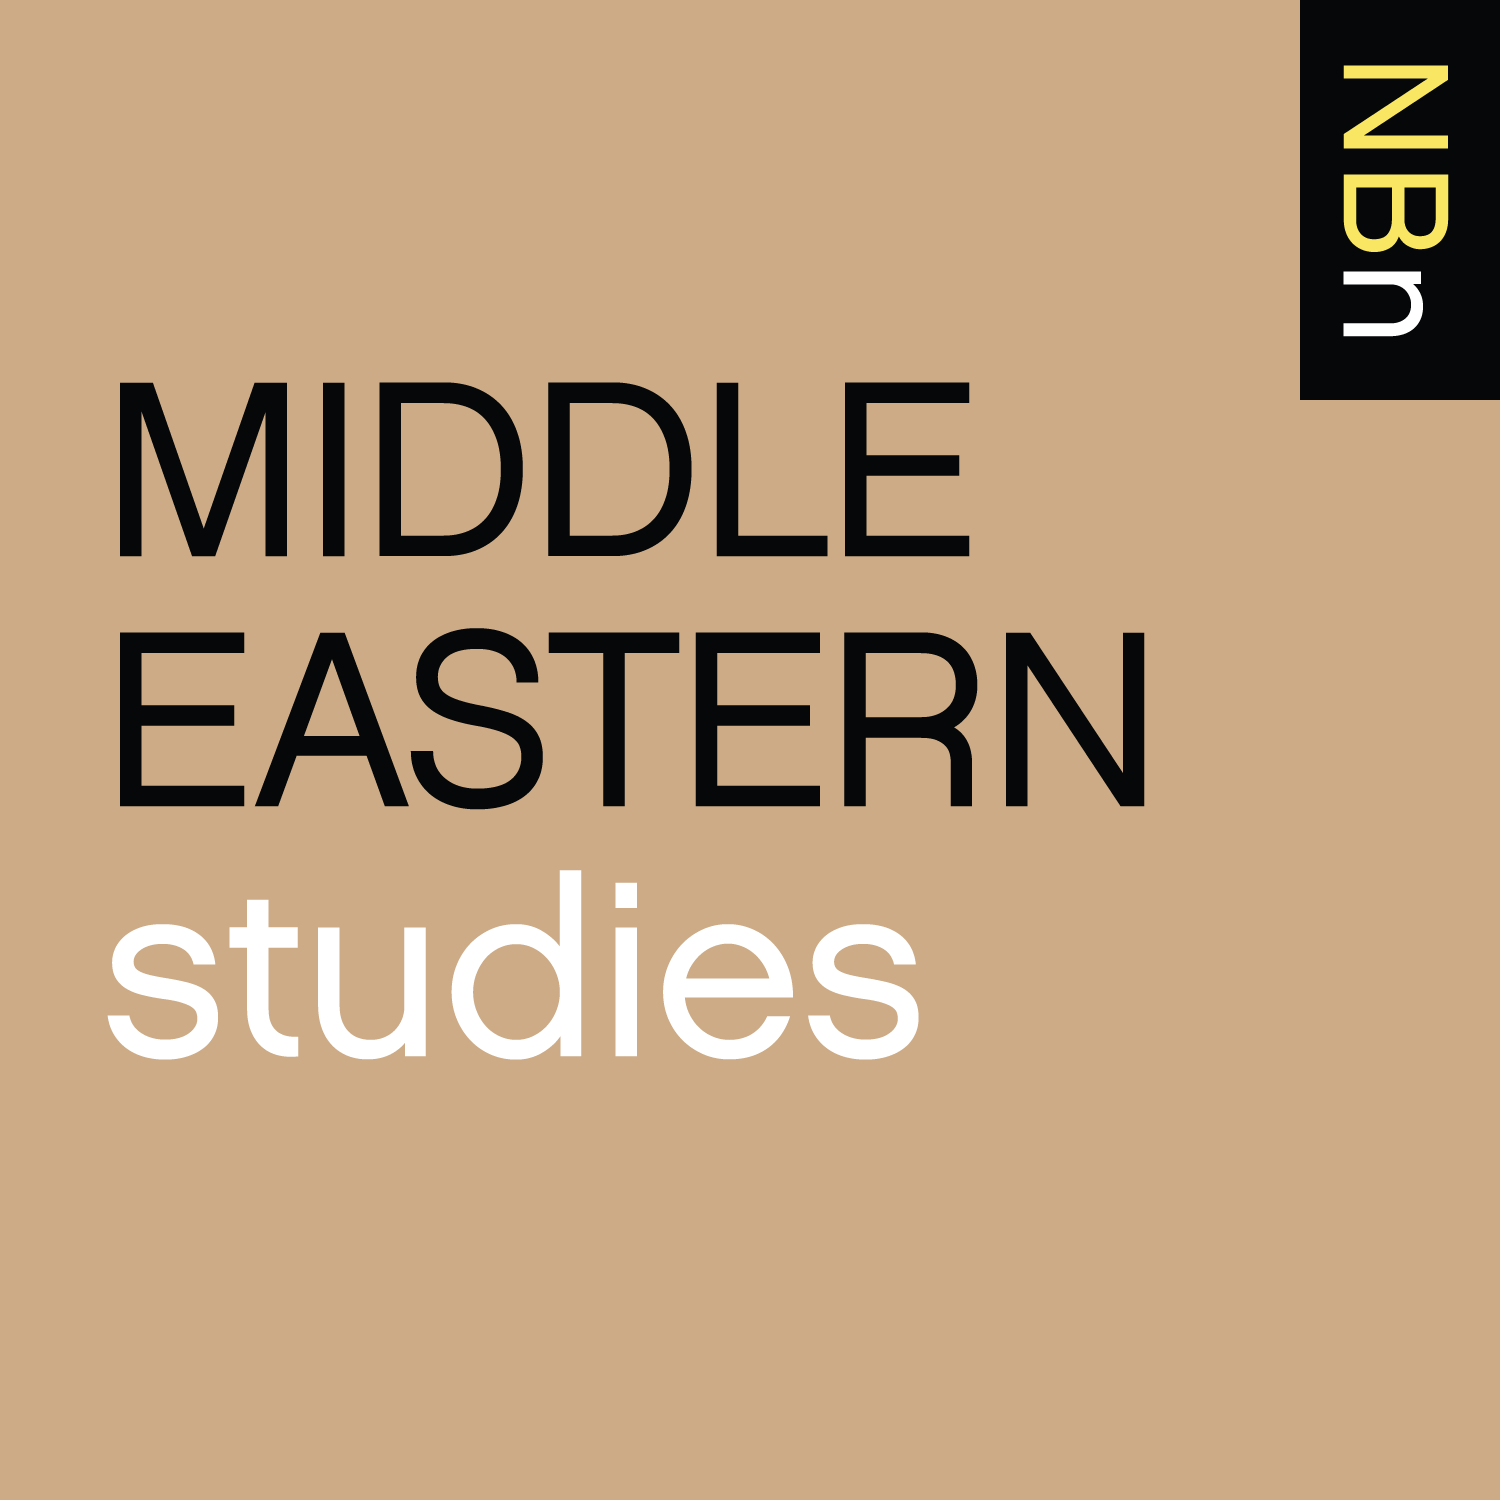 New Books in Middle Eastern Studies podcast tile